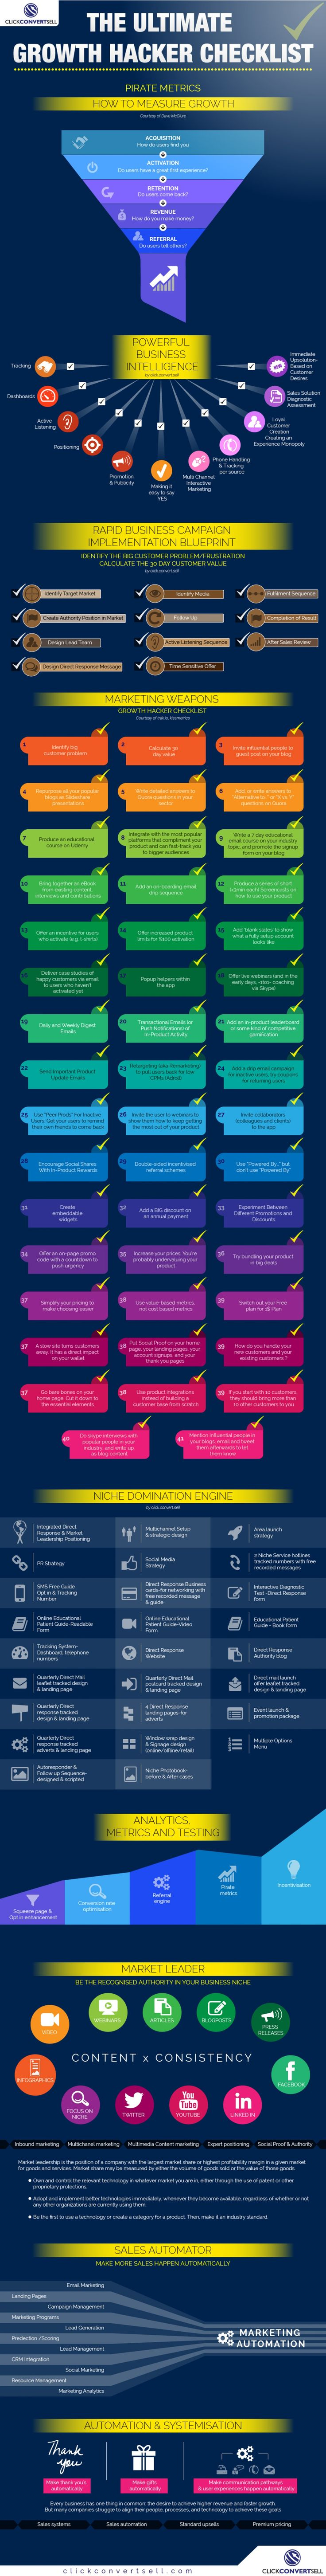 The Ultimate Growth Hacker Checklist #Infographic #infografía  www.electricturtles.com/collections